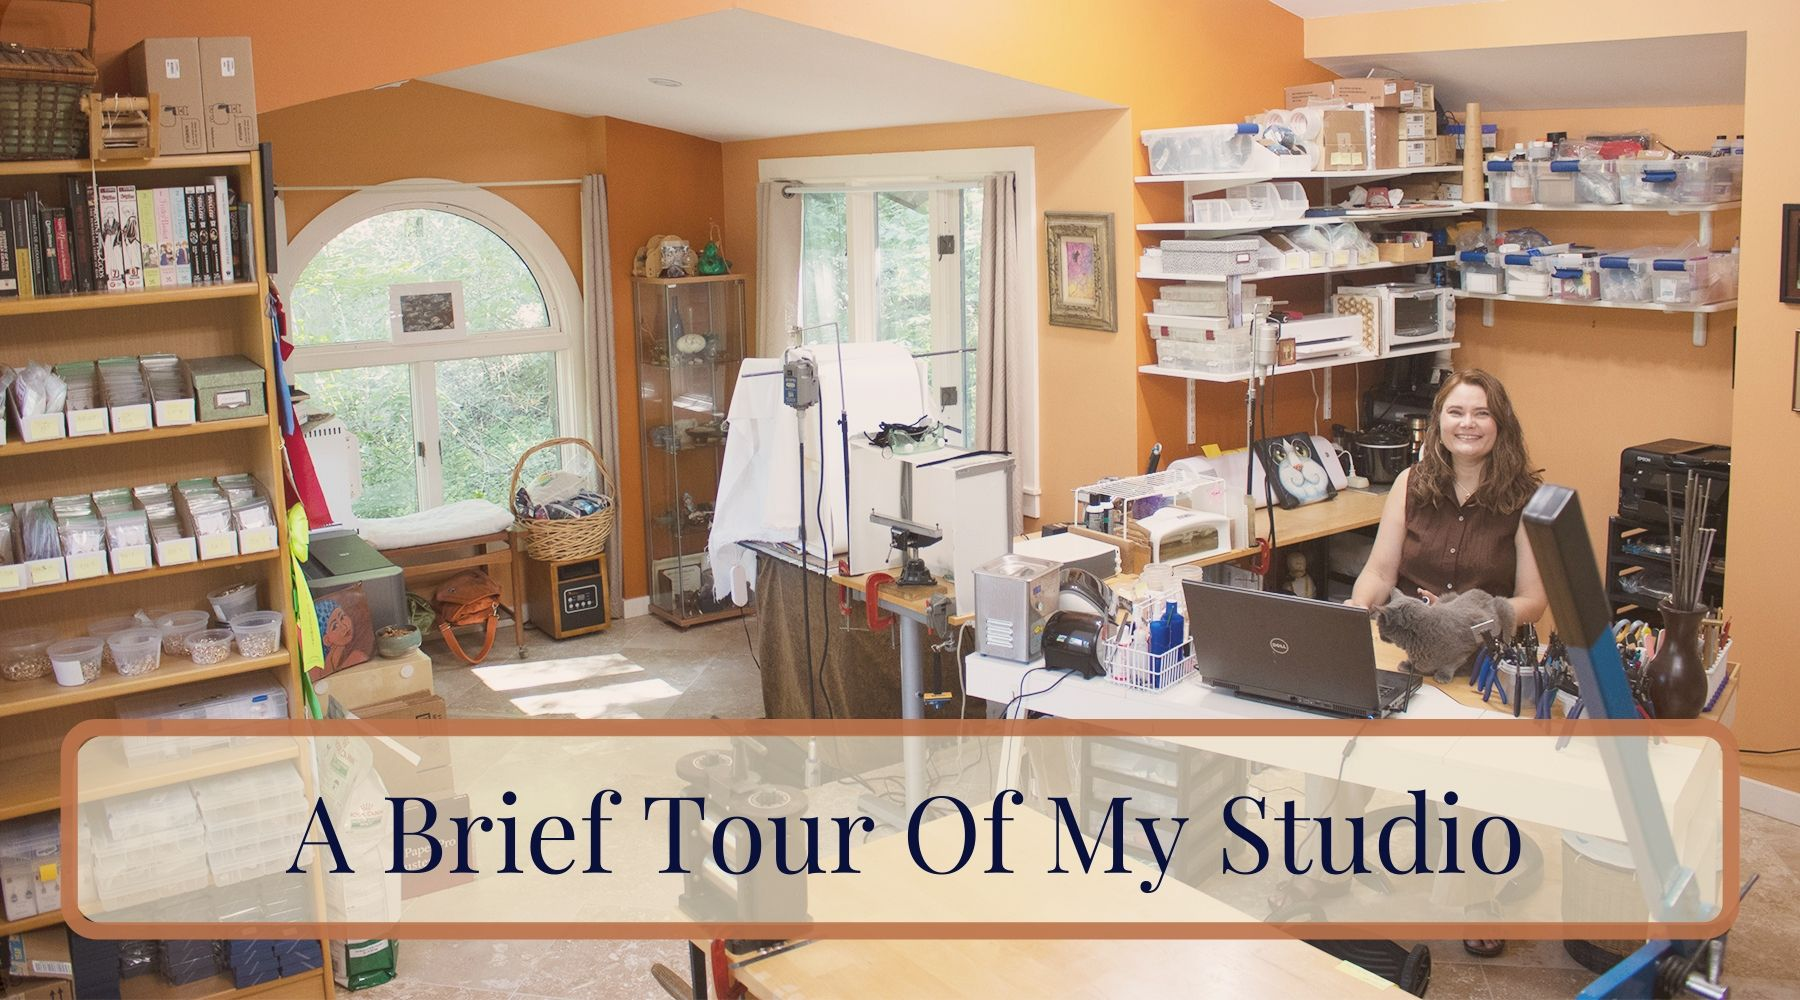 A brief tour of my studio